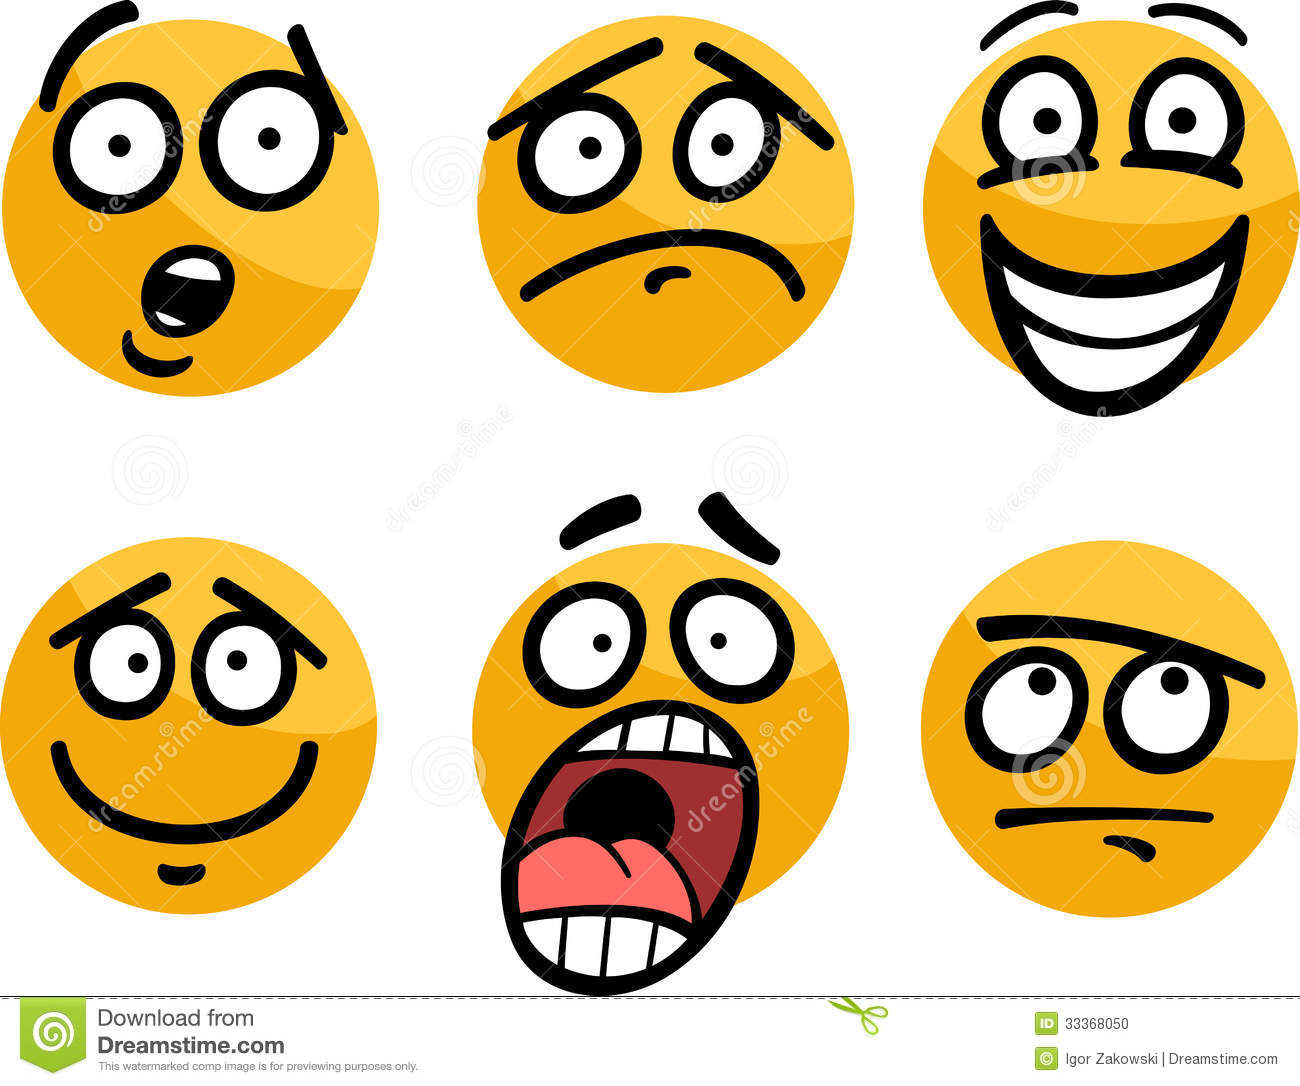 Emoticon Or Emotions Set Cartoon Illustration Stock Photo ...